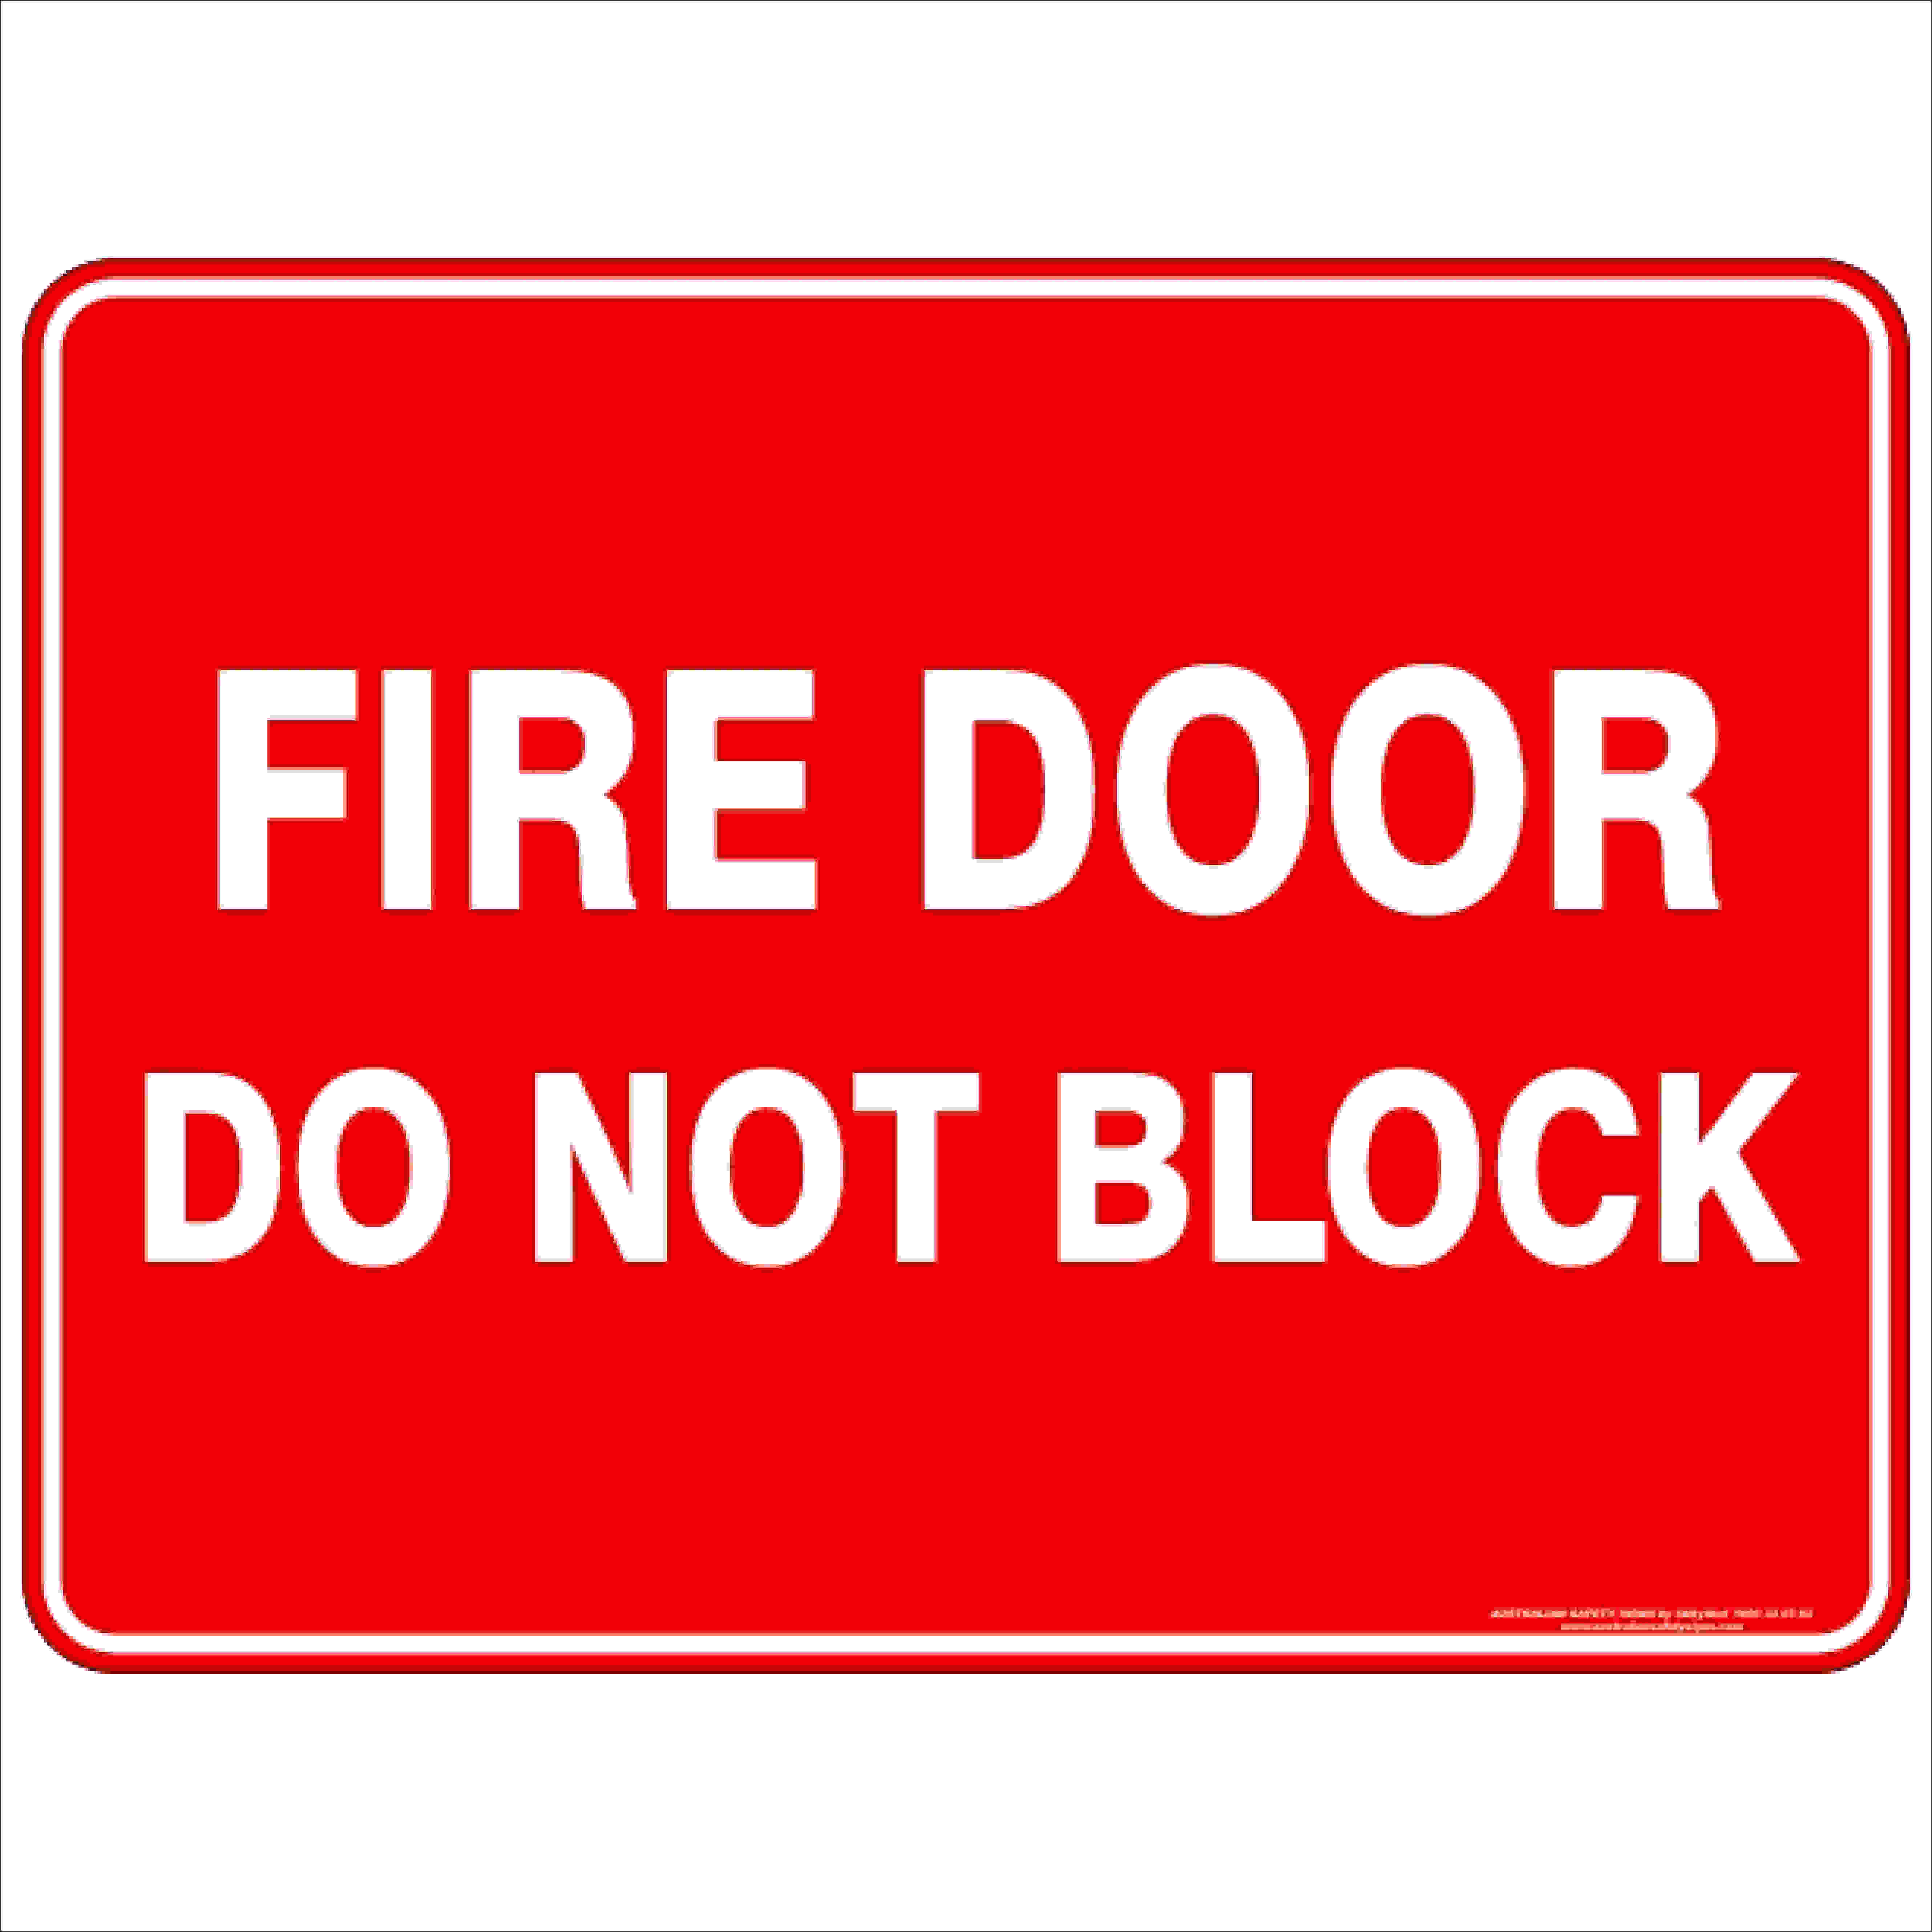 Fire Safety Signs FIRE DOOR DO NOT BLOCK